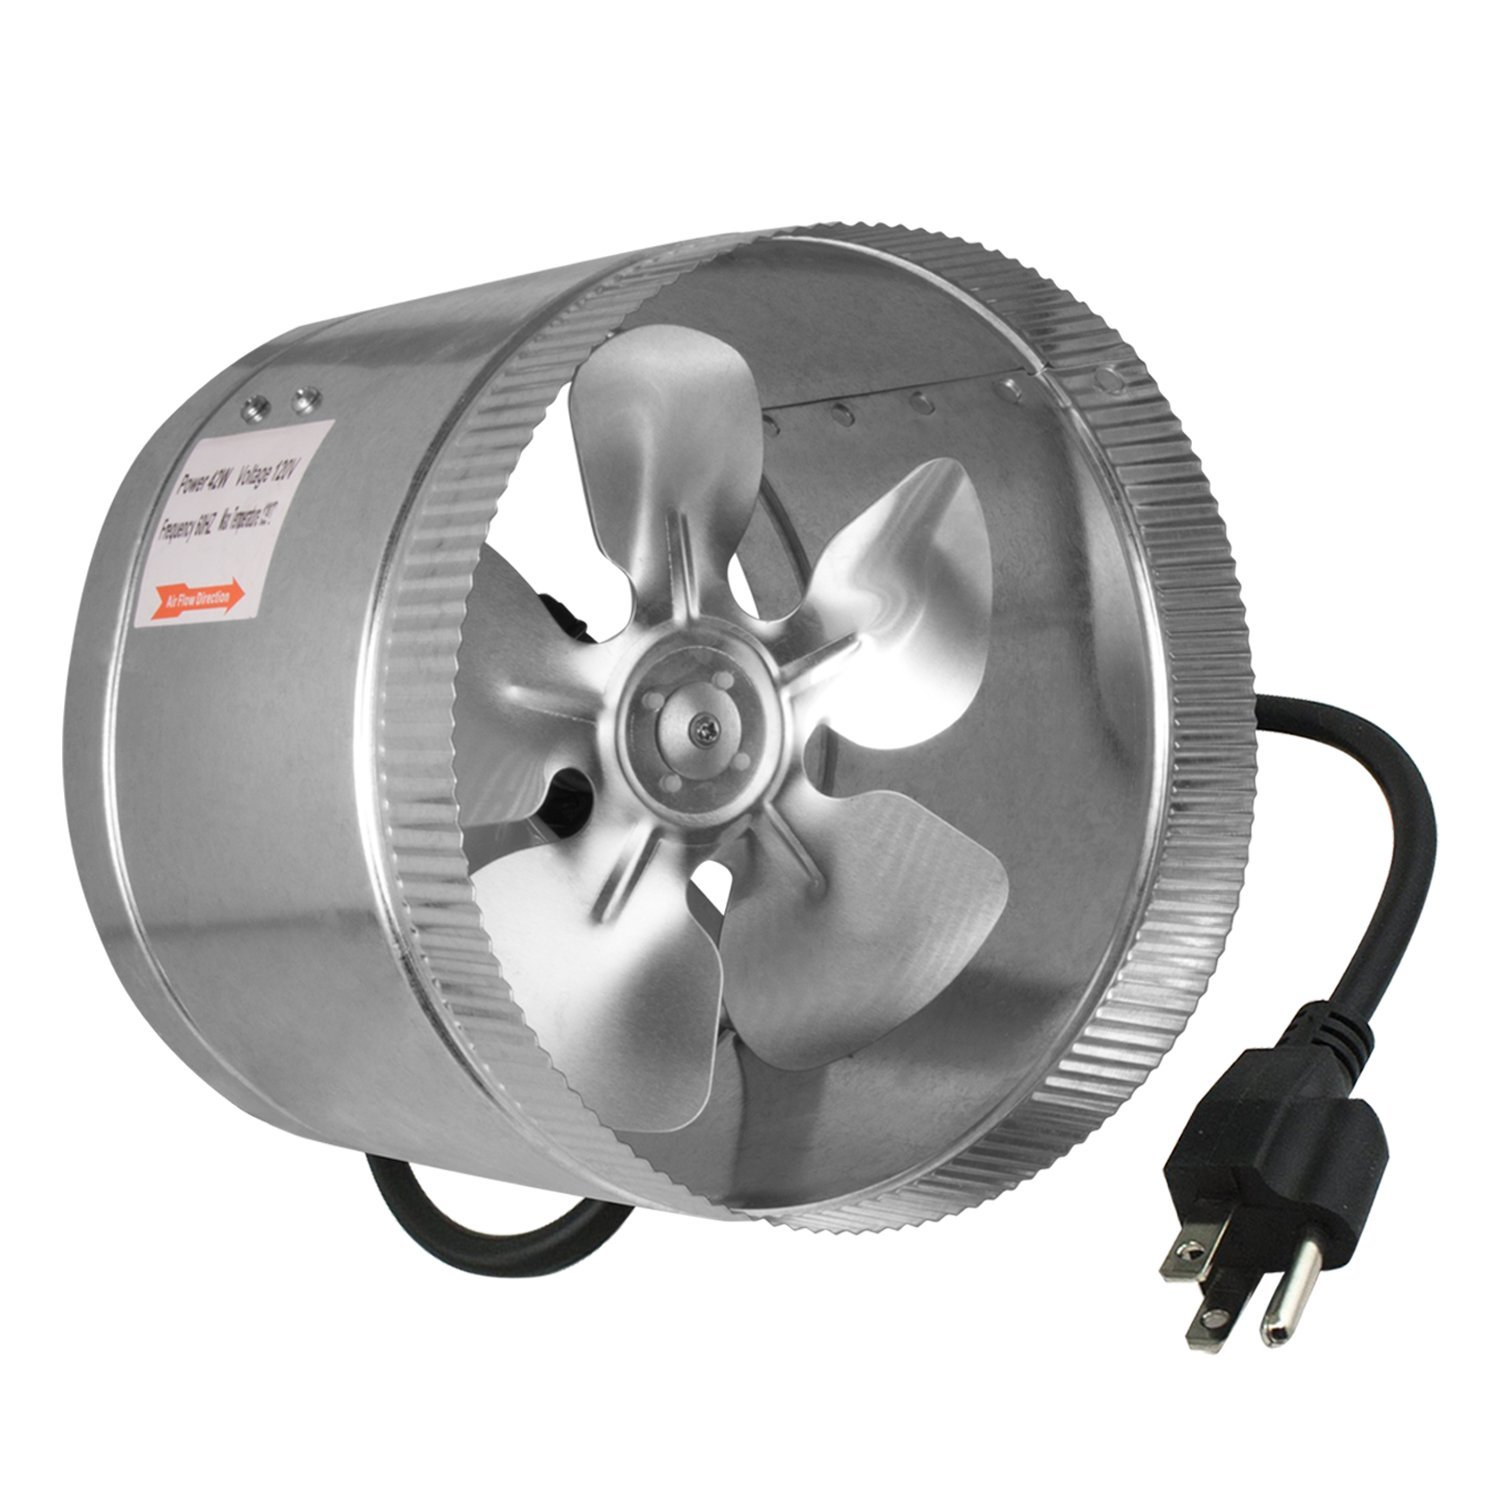 iPower 8 Inch 420 CFM Inline Duct Booster Fan Extractor Fan Dryer Vent, 5.5' Grounded Power Cord